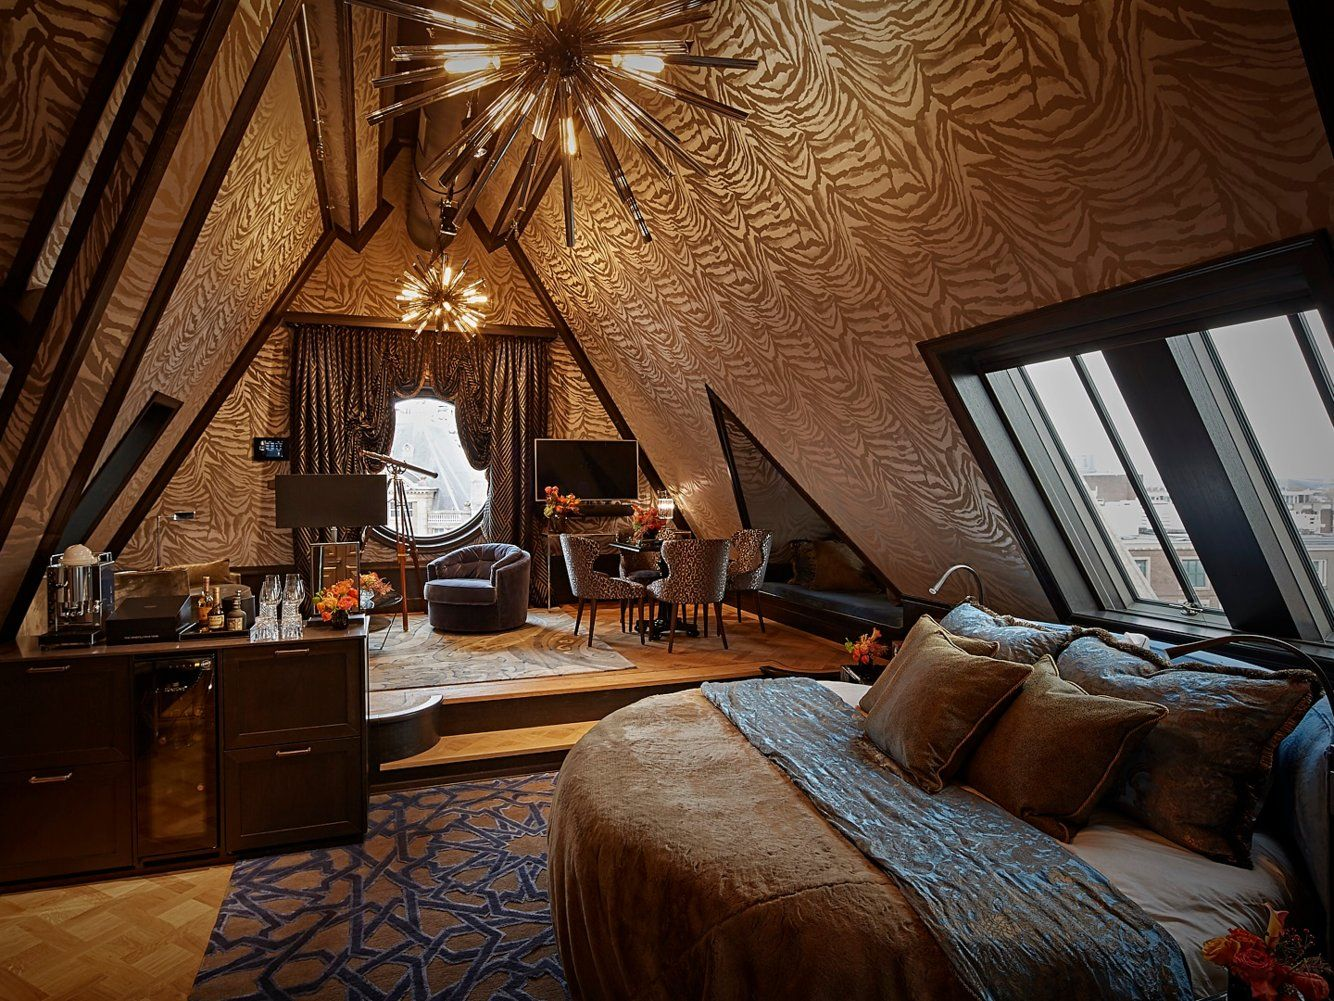 The Top 18 Boutique Hotels In The World That Should Be On Every